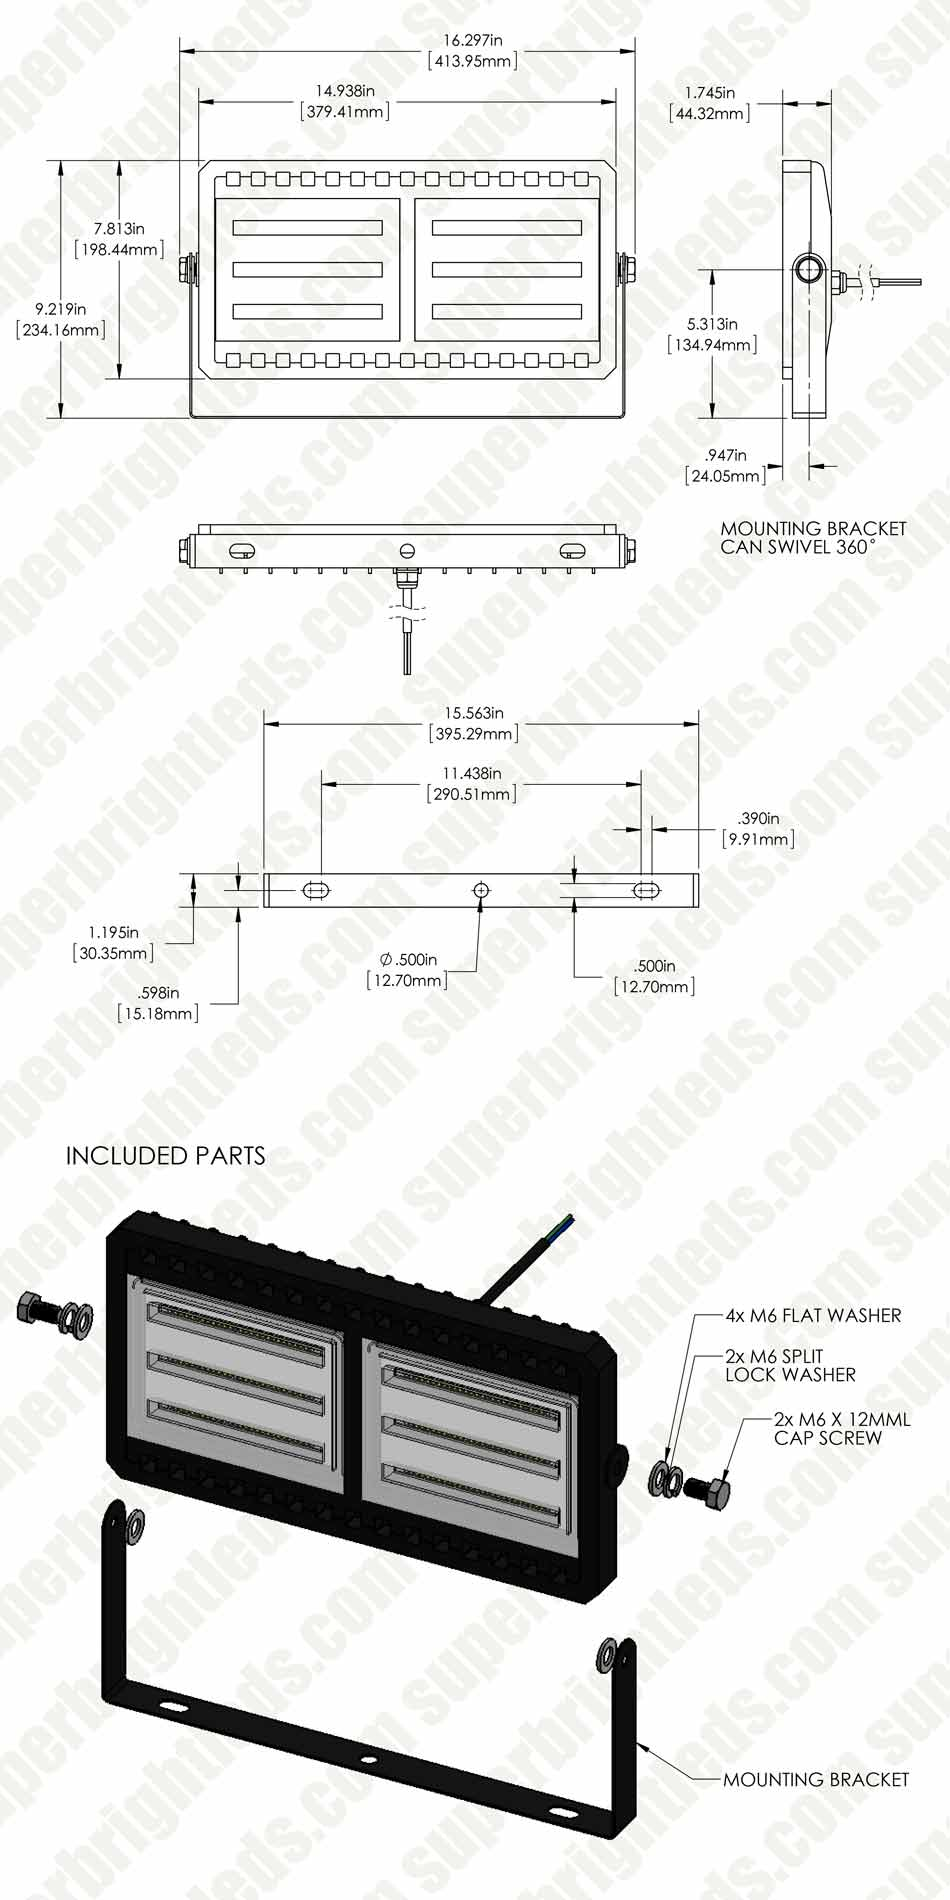 100 Watt LED Flood Light Fixture - Low Profile -  9,300 Lumens